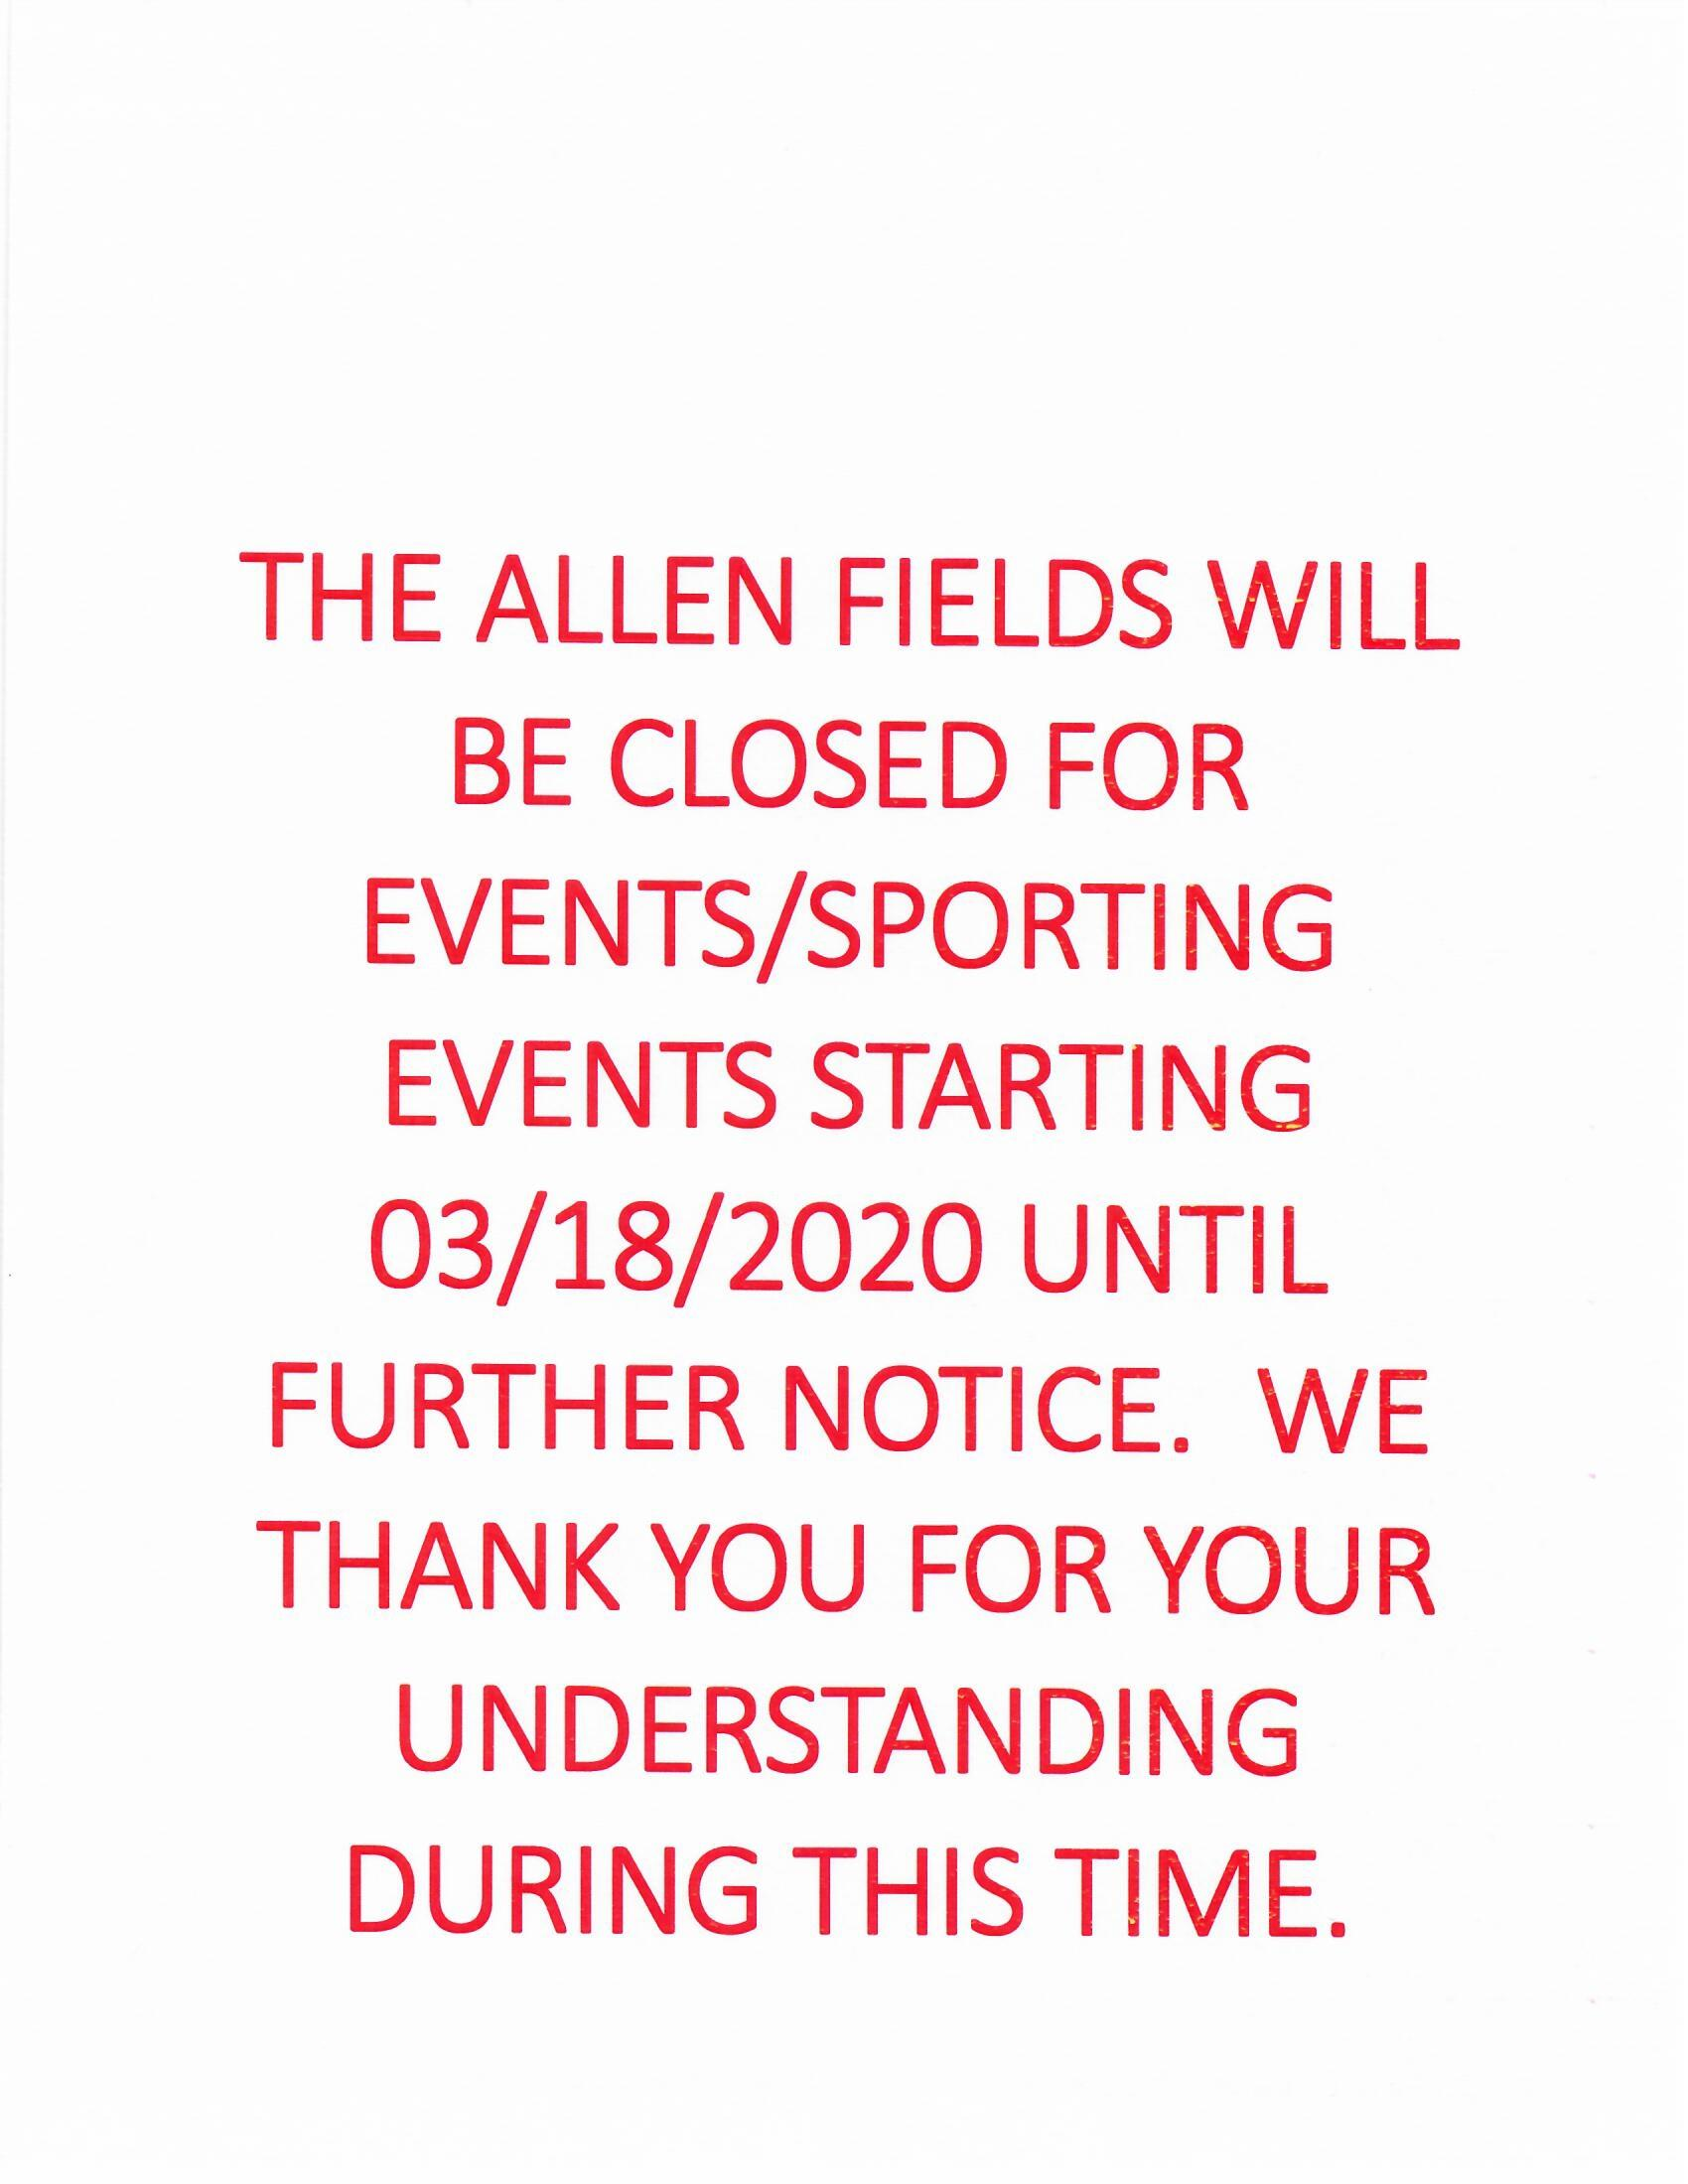 virus closure.March, 18, 2020 allenfields